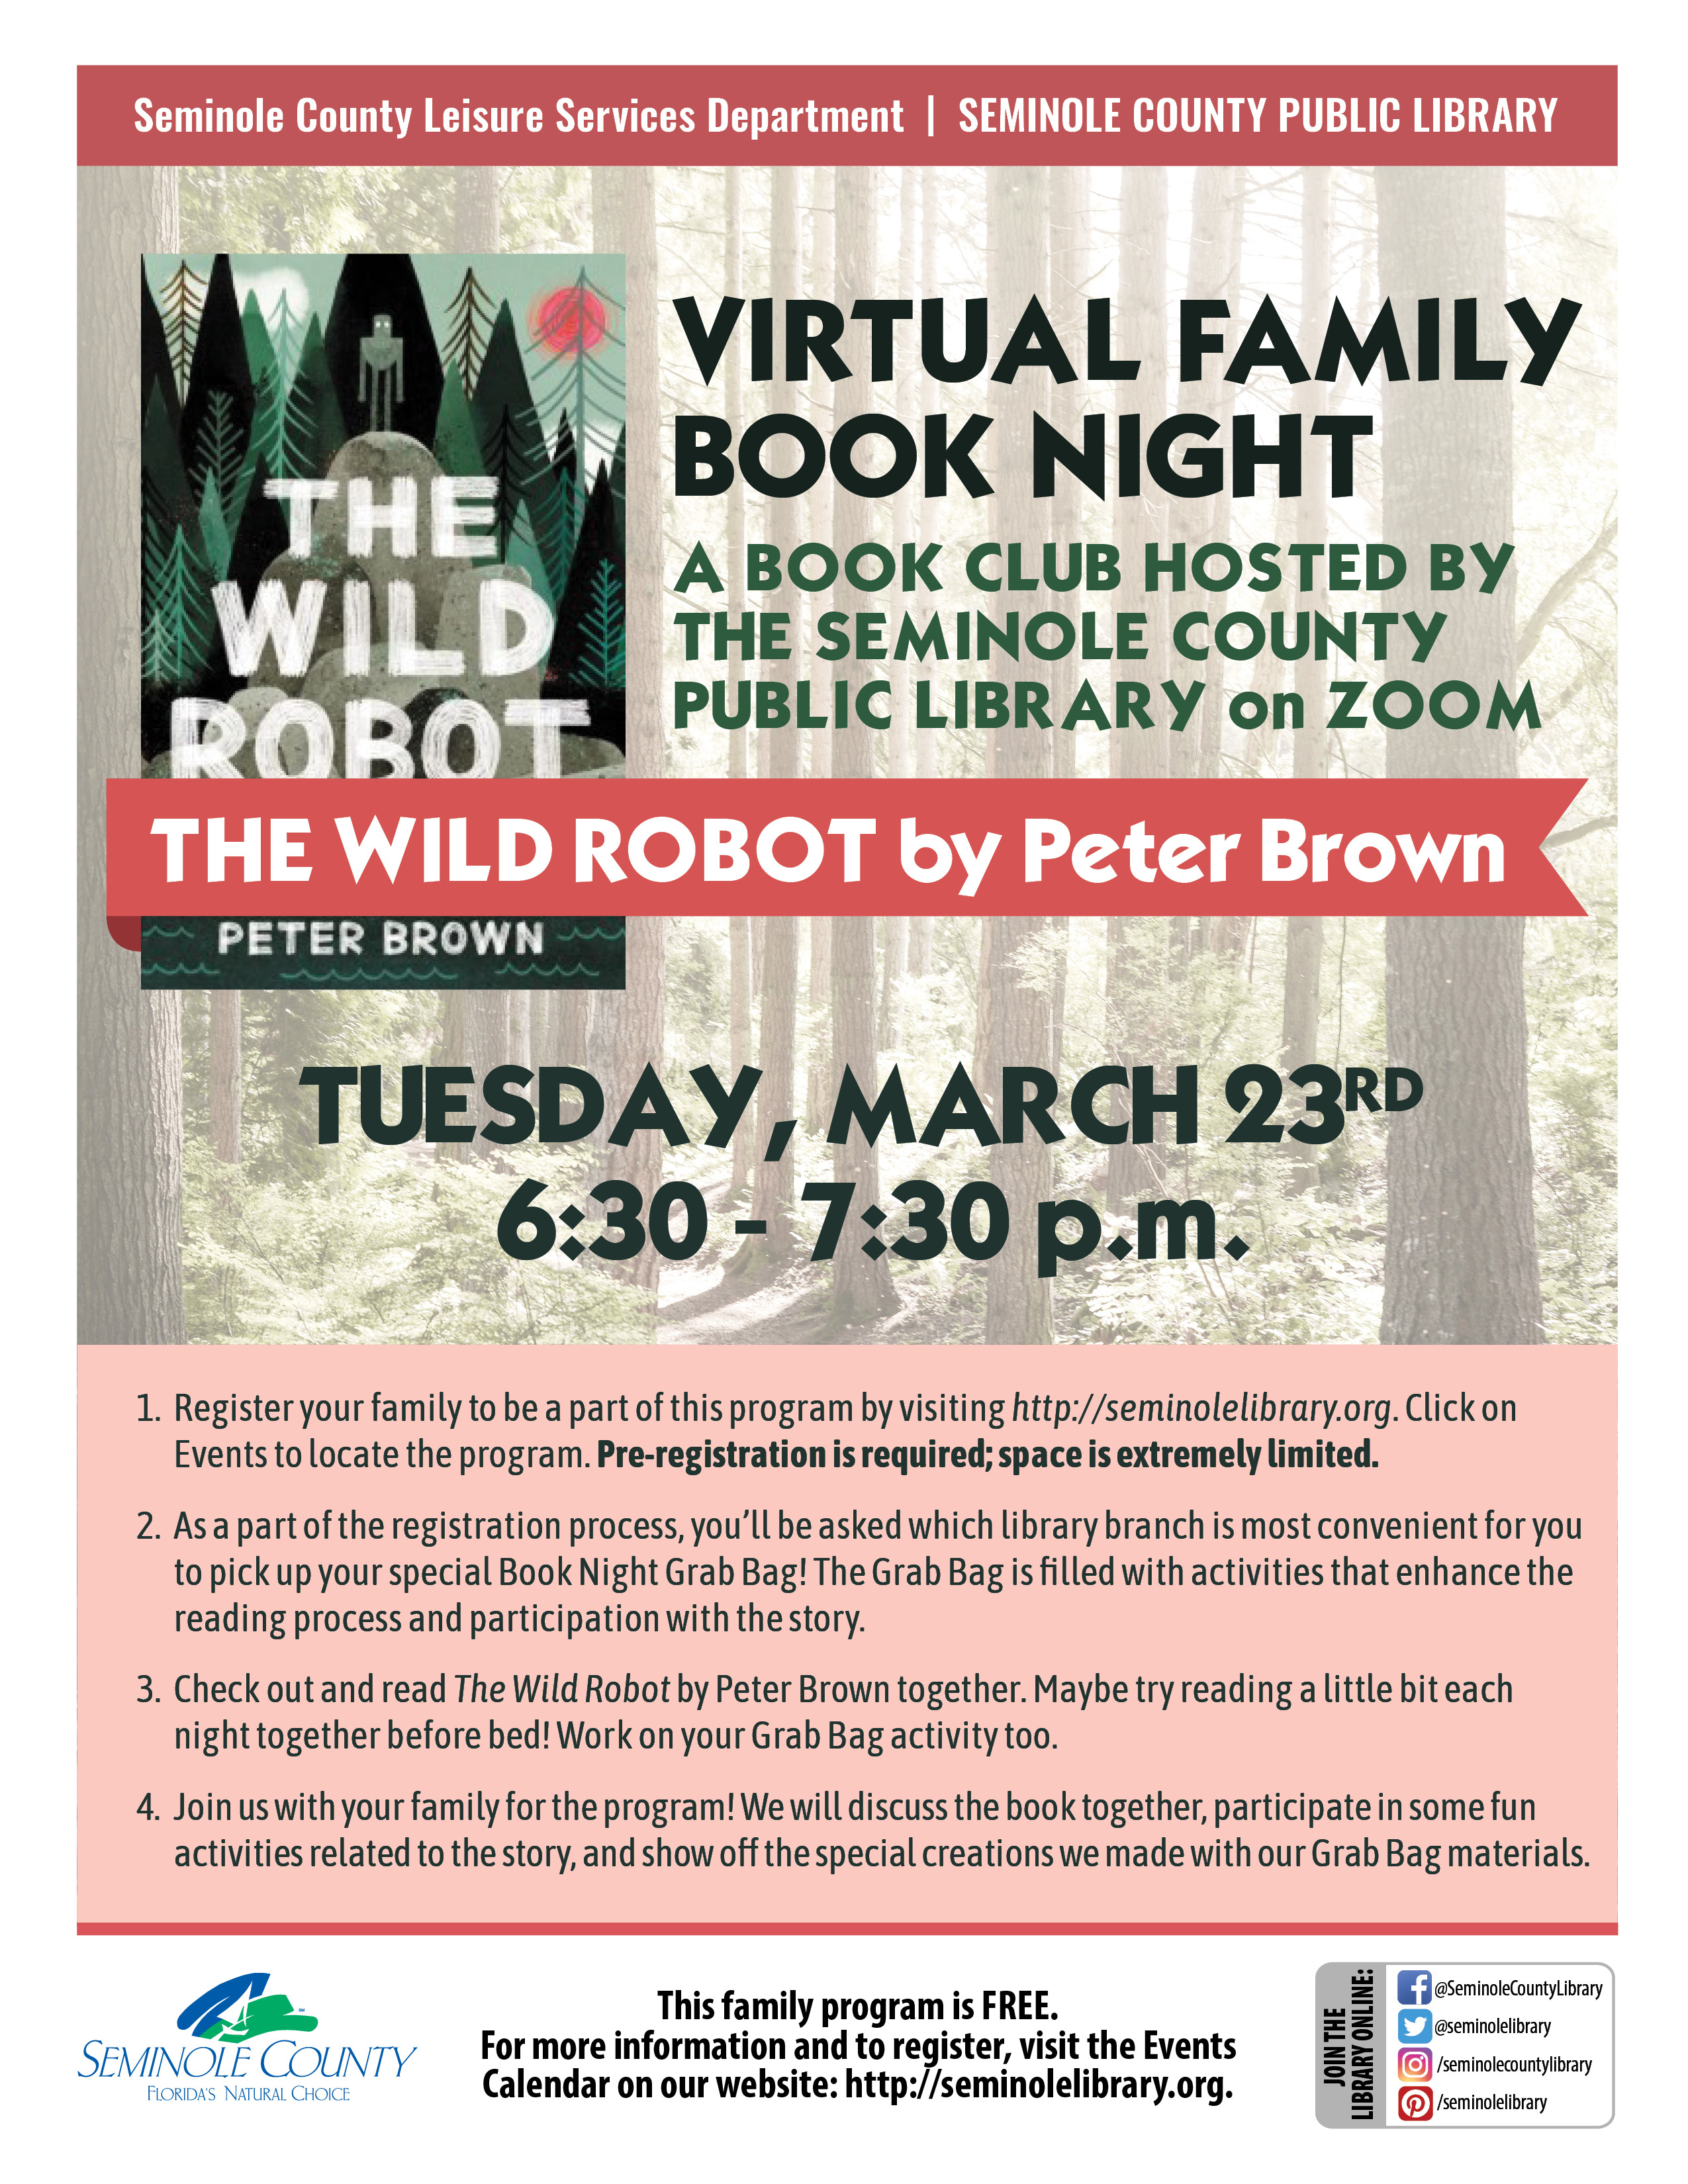 Family Book Night - The Wild Robot